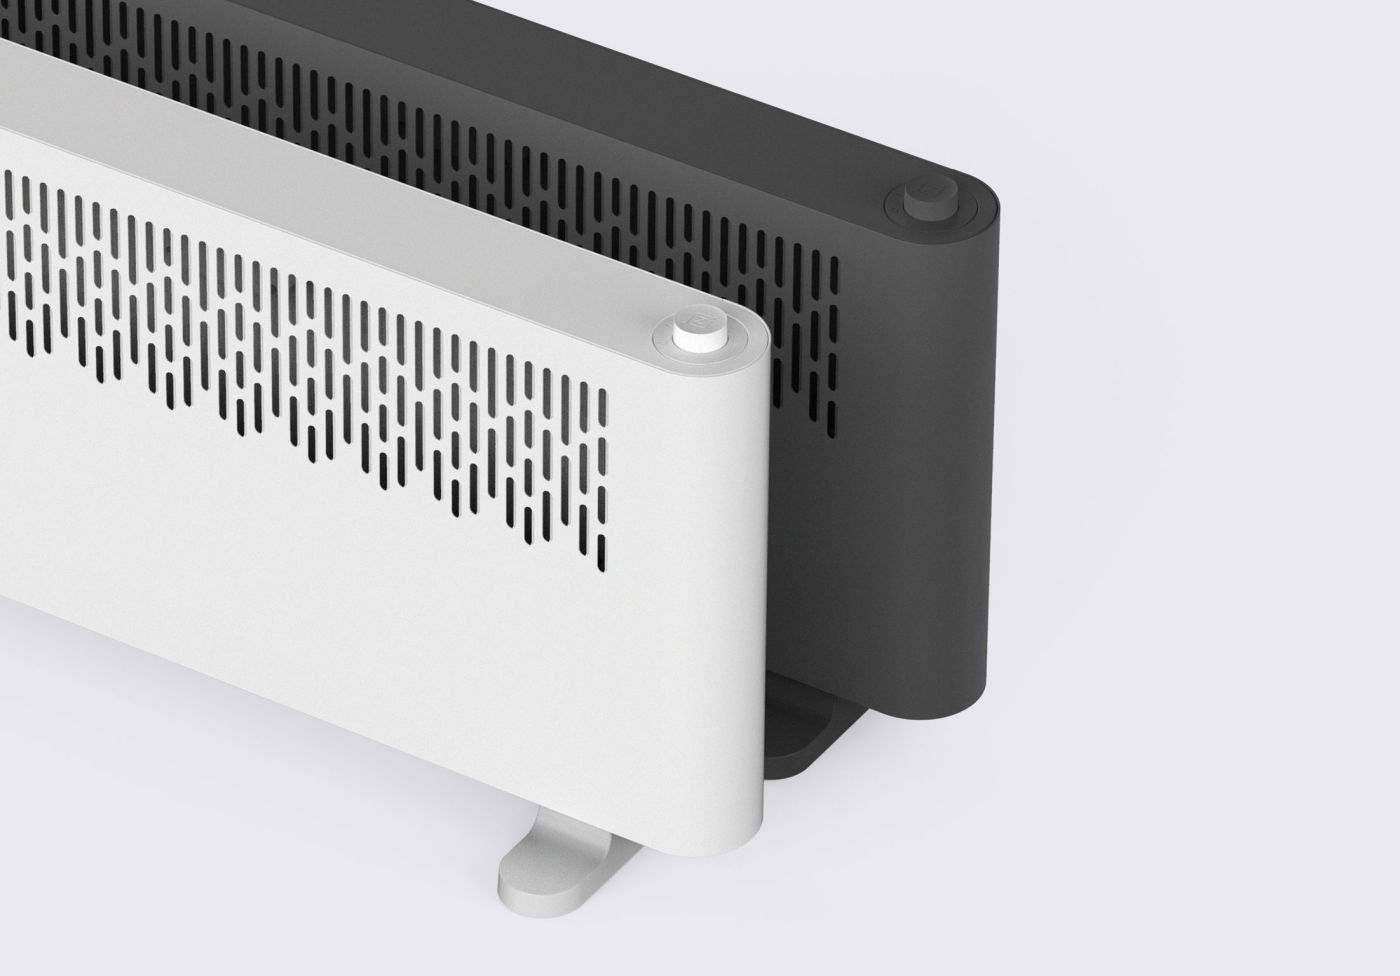 Xiaomi youpin electric heater